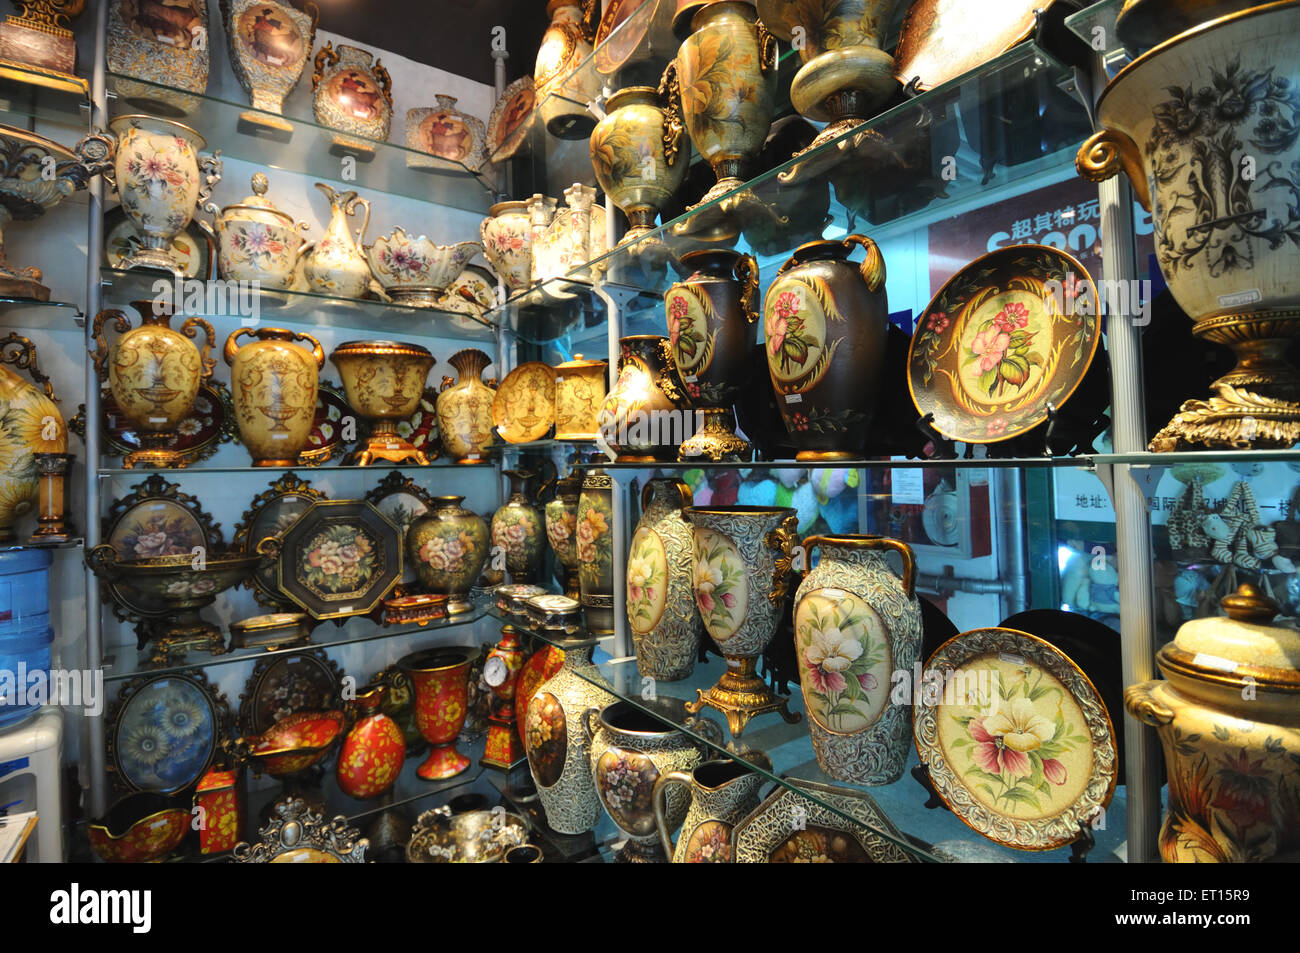 Display of ceramic items in chinese shop ; Yiwu ; China - Stock Image